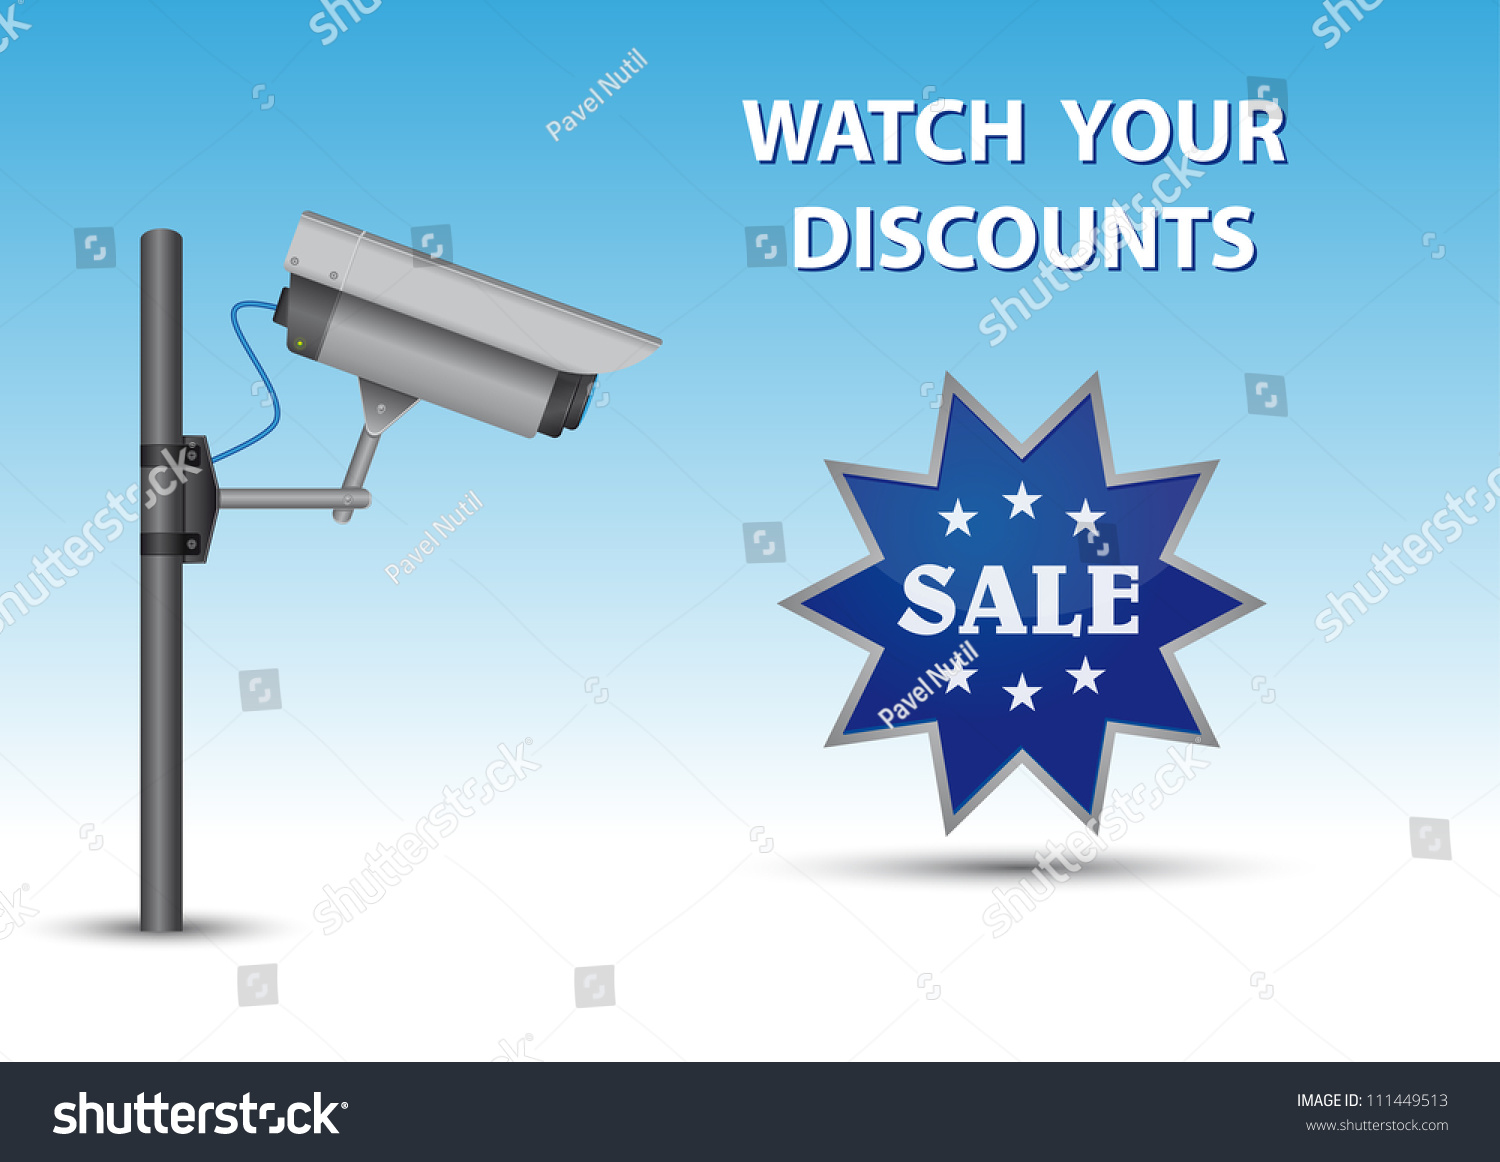 stock vector security cctv camera with open lens and wires on pole blue sticker with text sale and au above 111449513 rj11 security camera wiring diagram efcaviation com weatherproof security camera 47546 wiring diagram at readyjetset.co